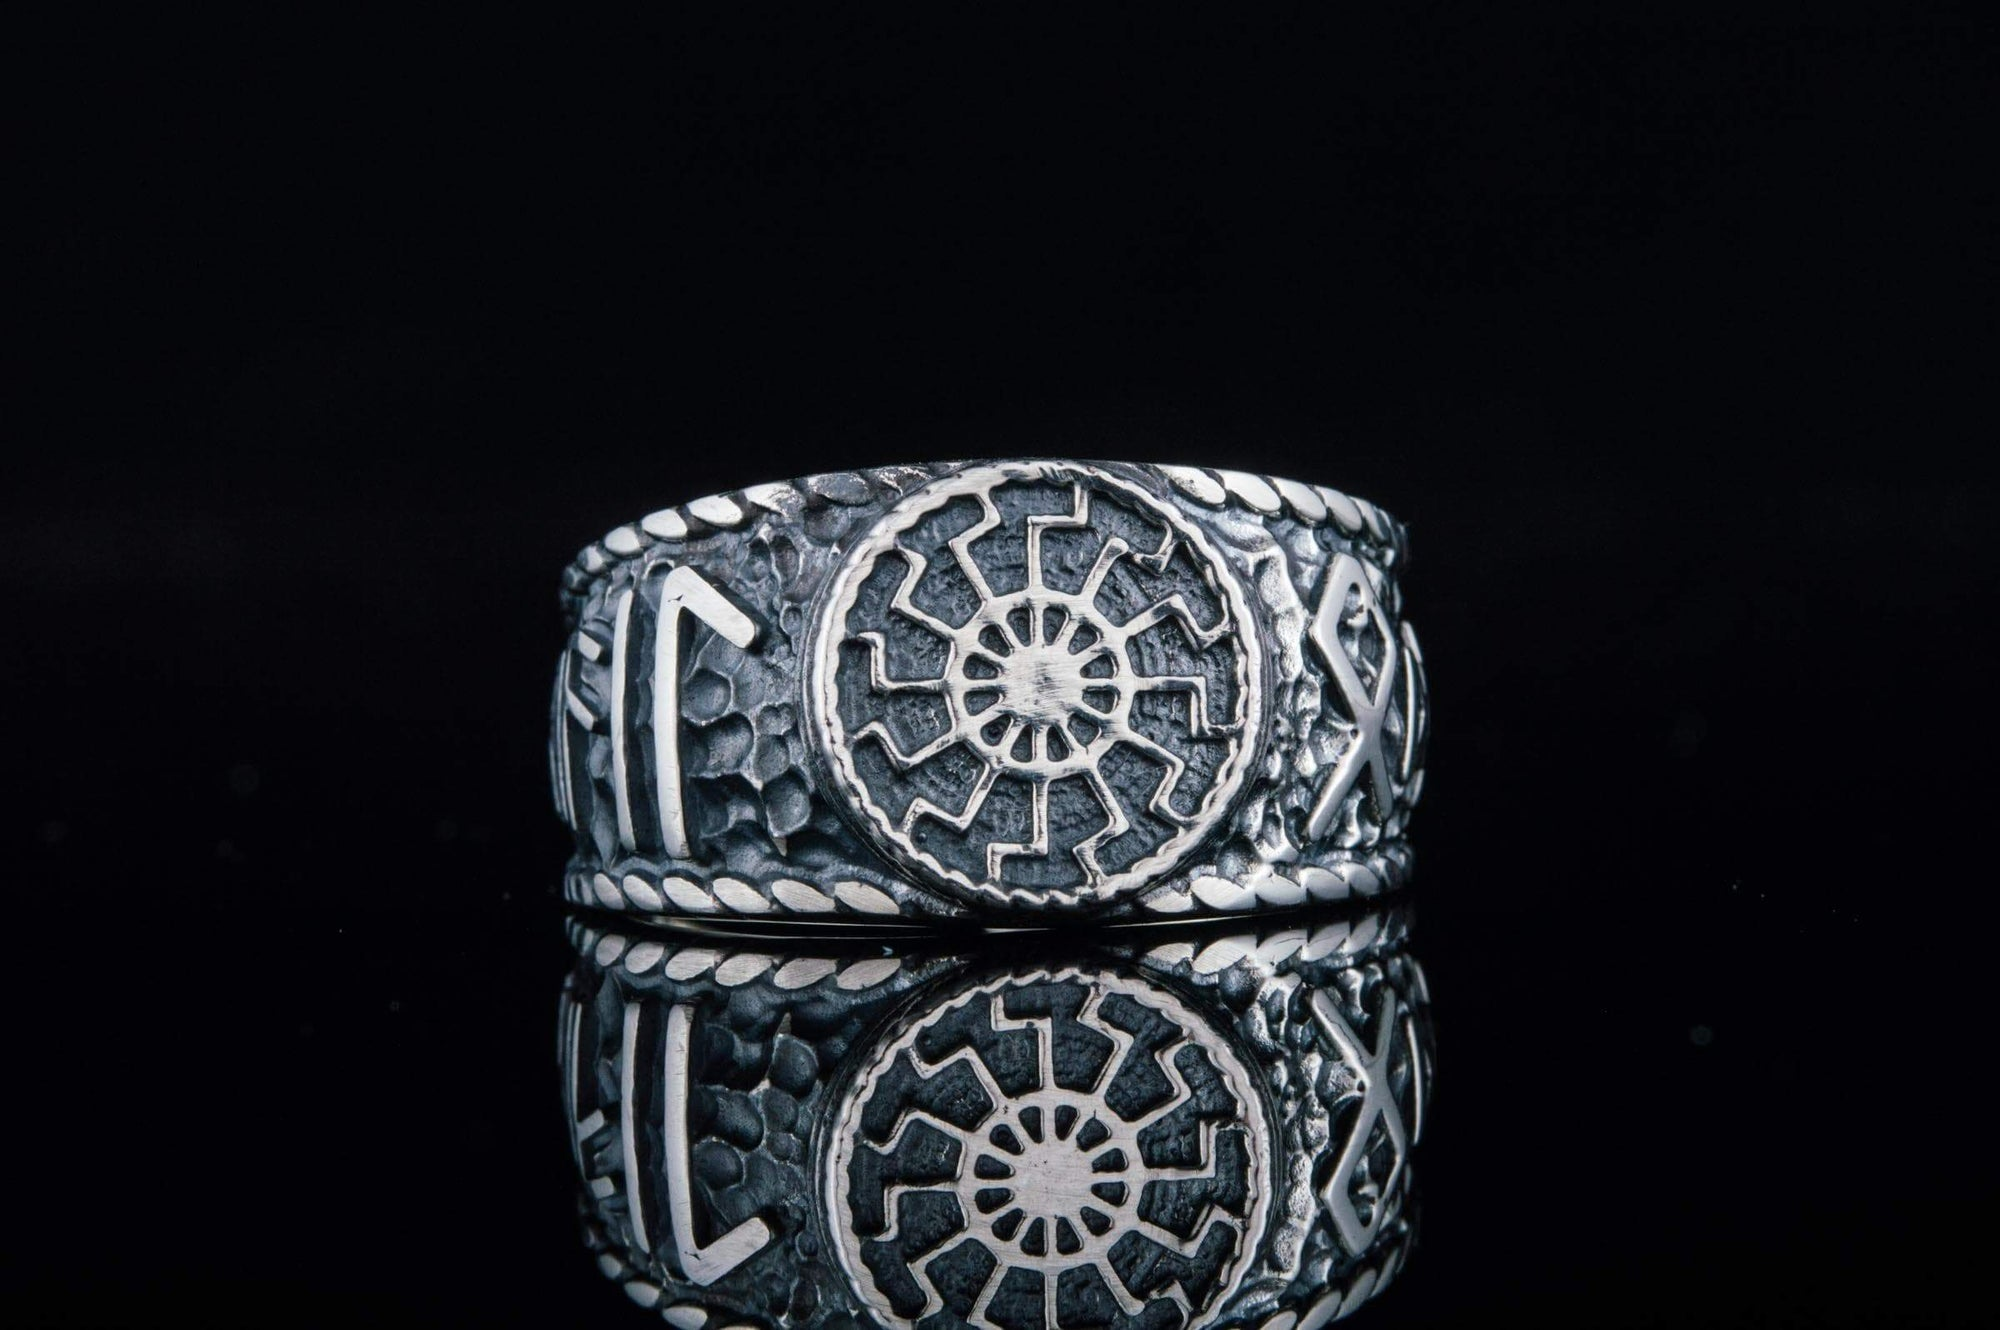 Vikings Black Sun Handcrafted Ring with HAIL ODIN Runes